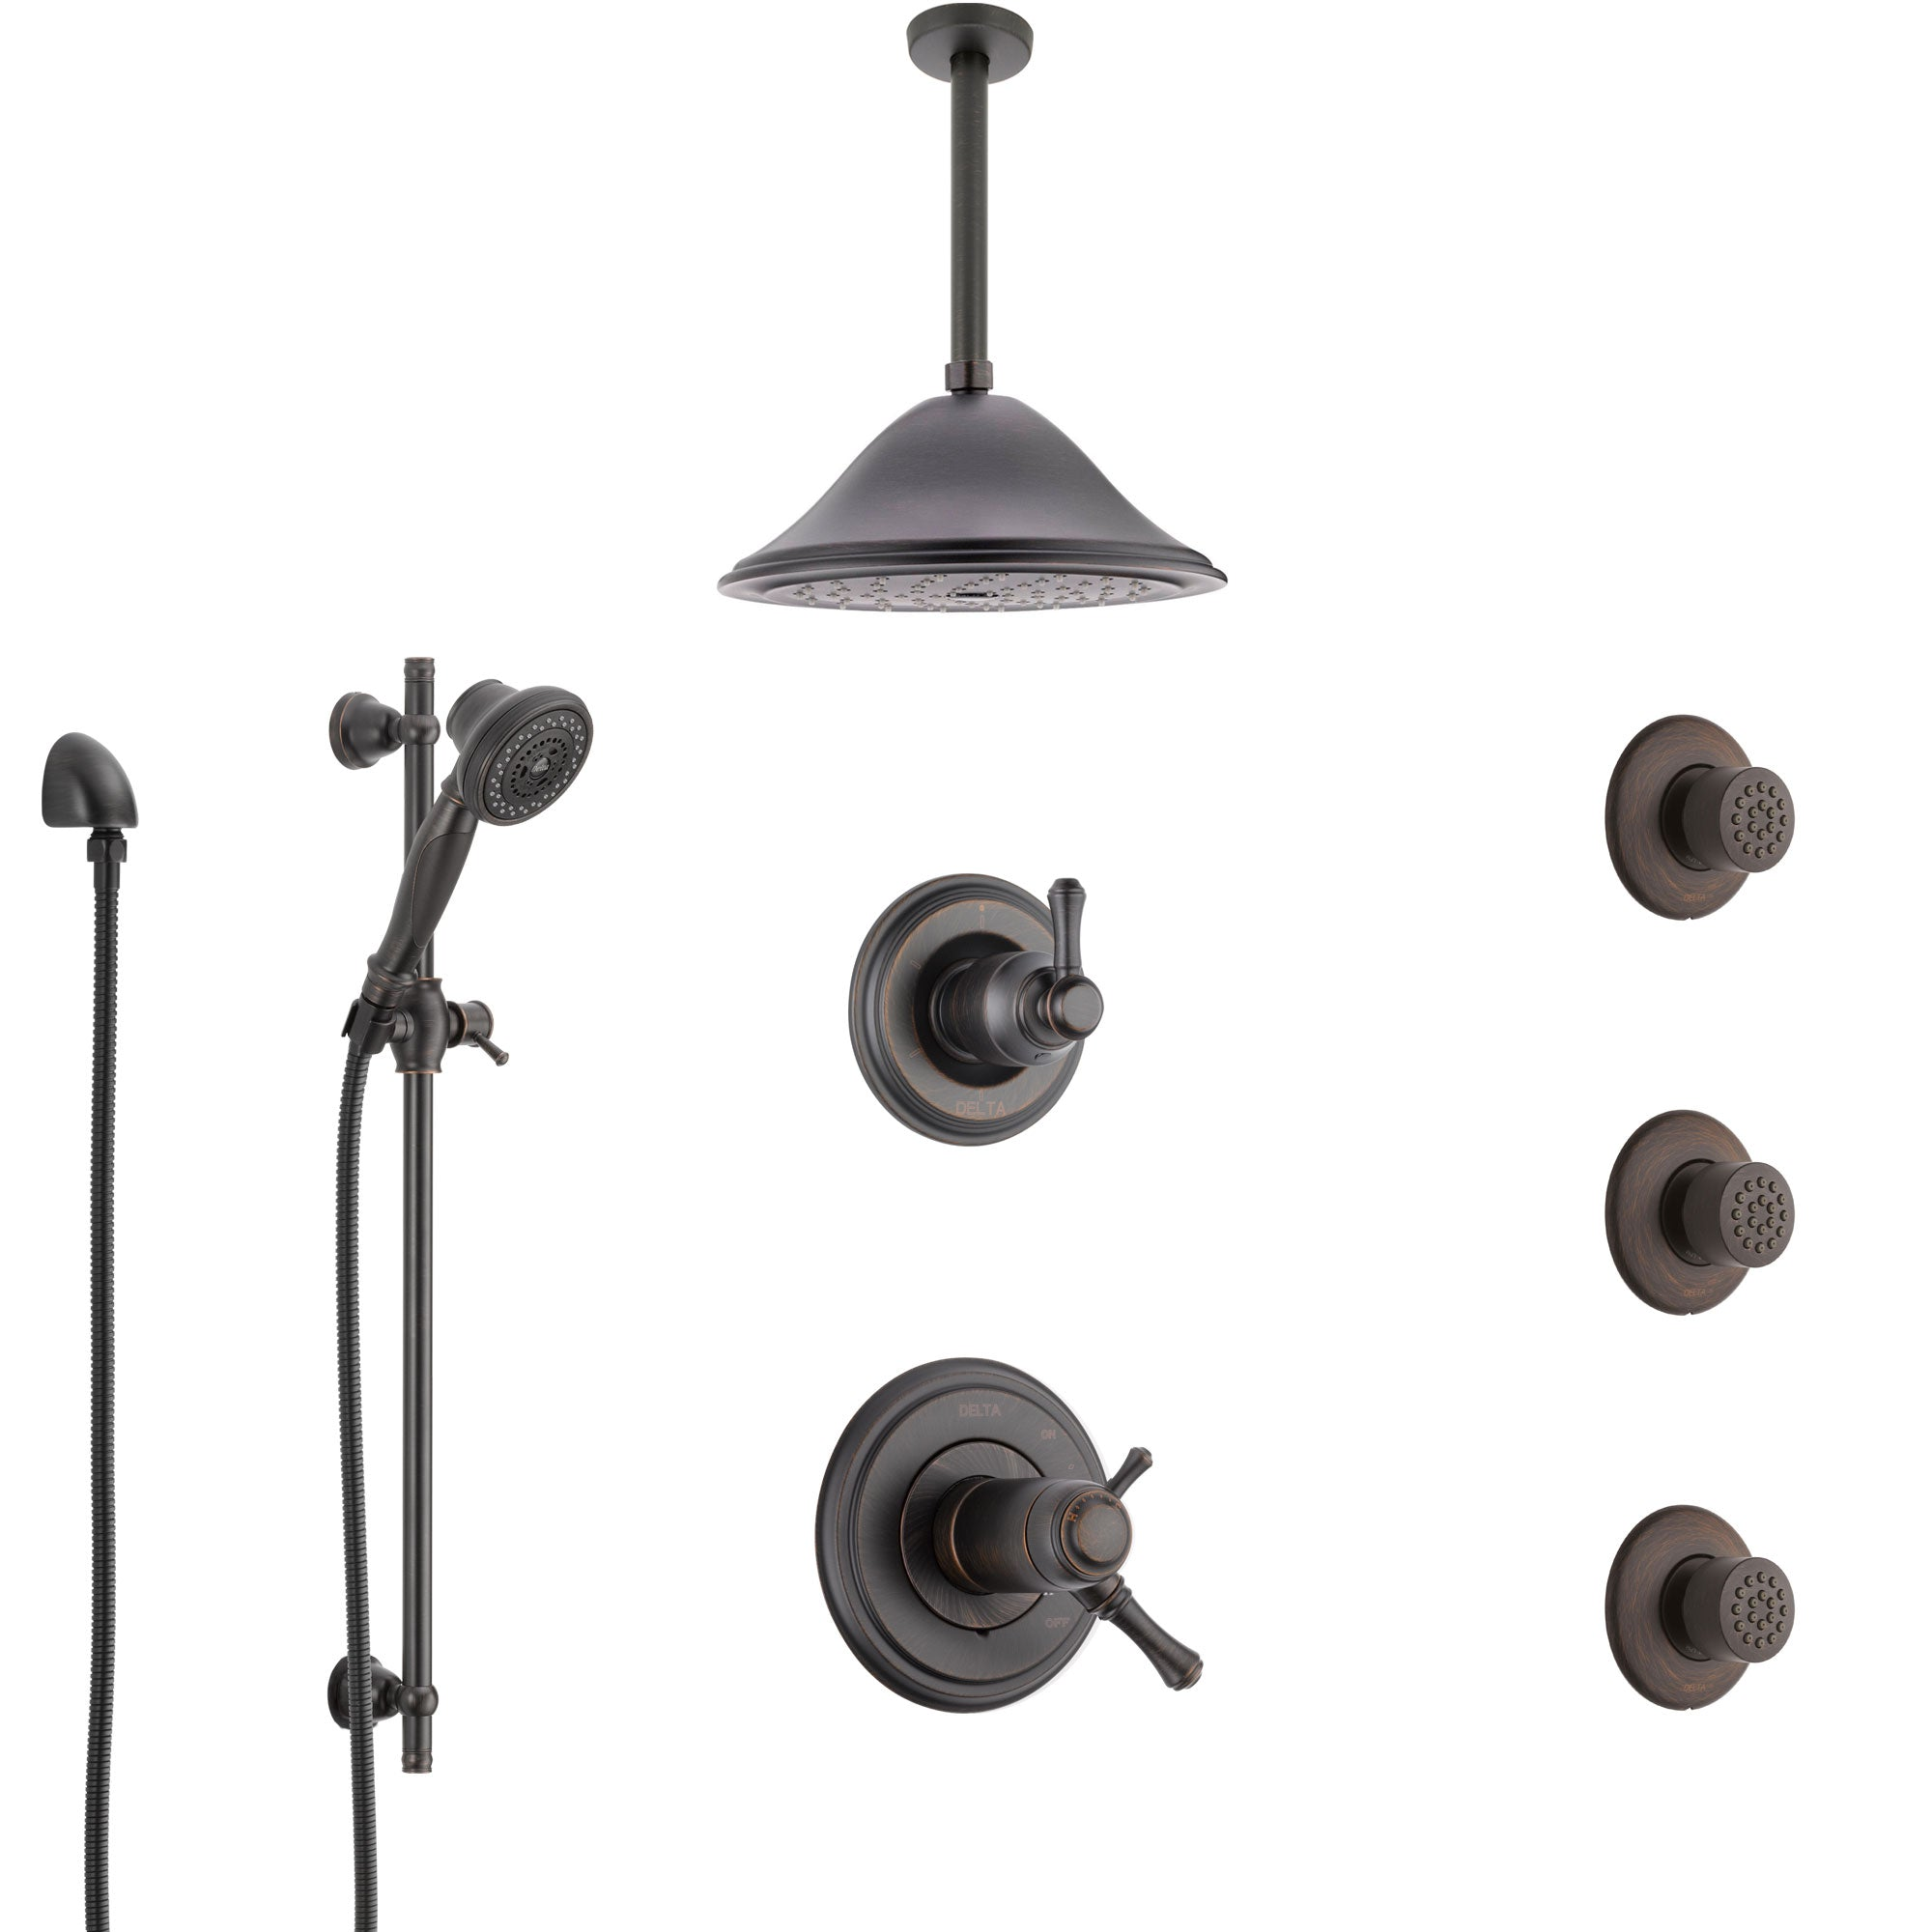 Delta Cassidy Venetian Bronze Shower System with Dual Thermostatic Control, Diverter, Ceiling Showerhead, 3 Body Sprays, and Hand Shower SS17T971RB5